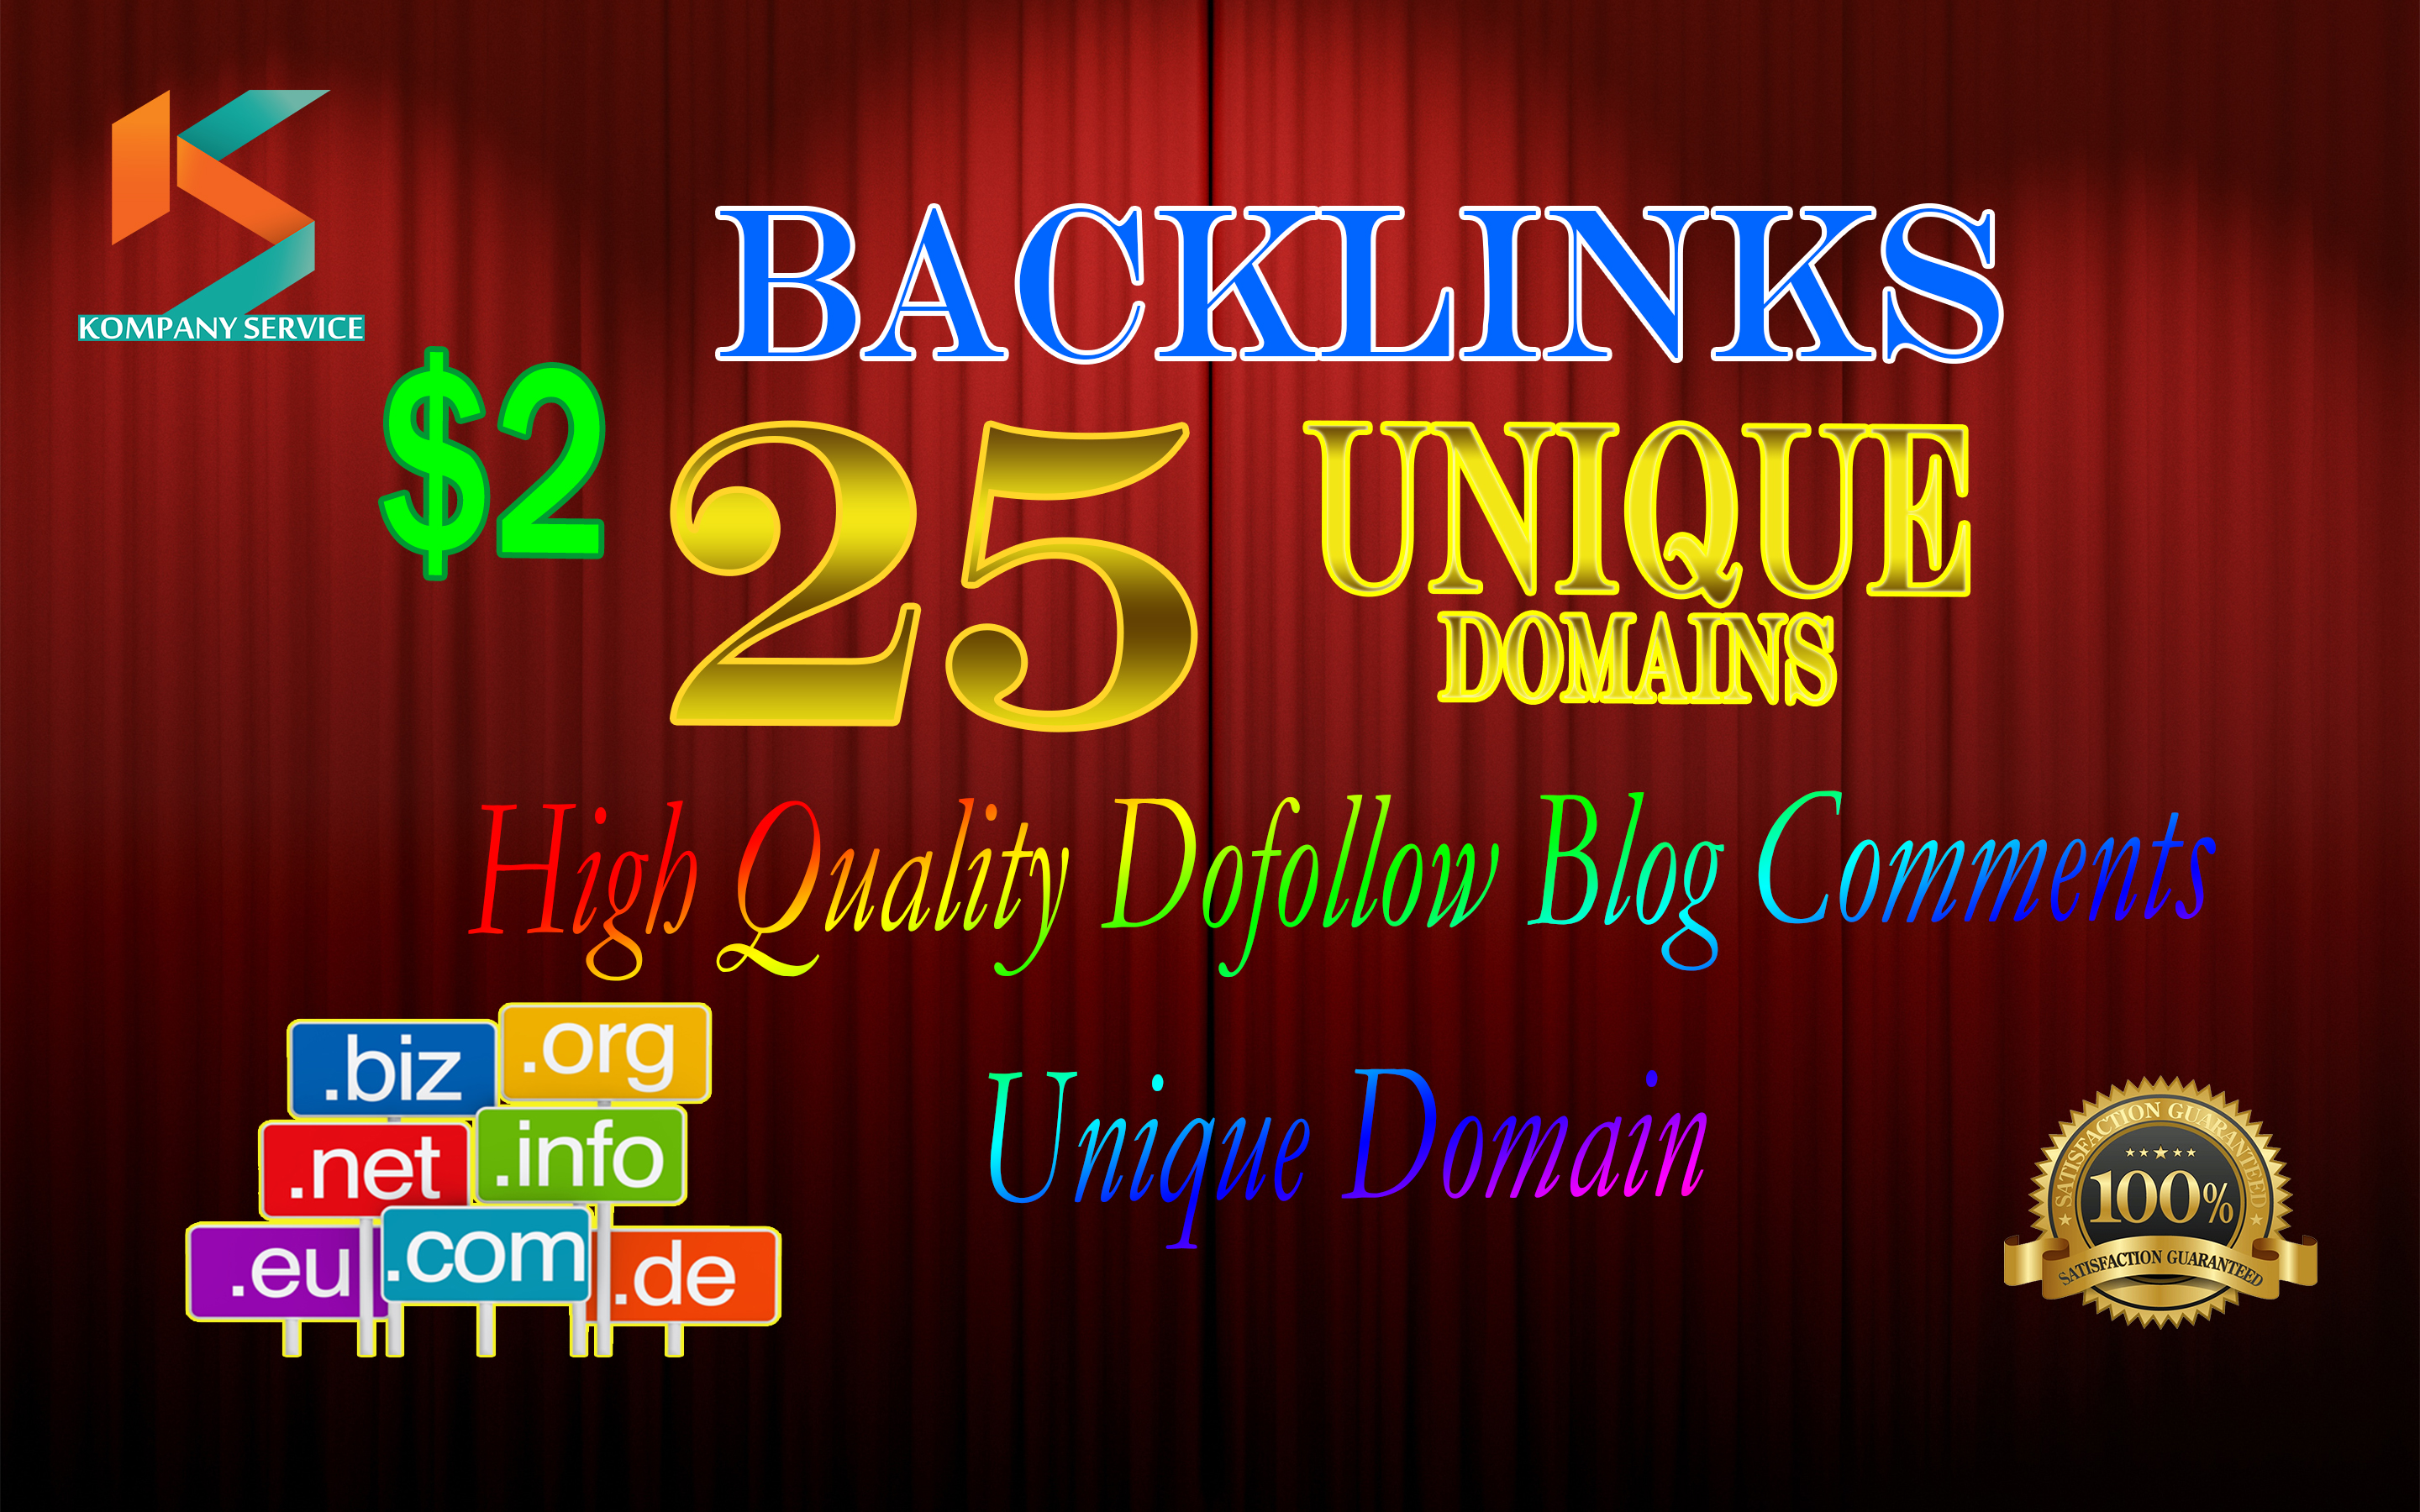 provide manual unique domain blog comments backlinks for just 2.